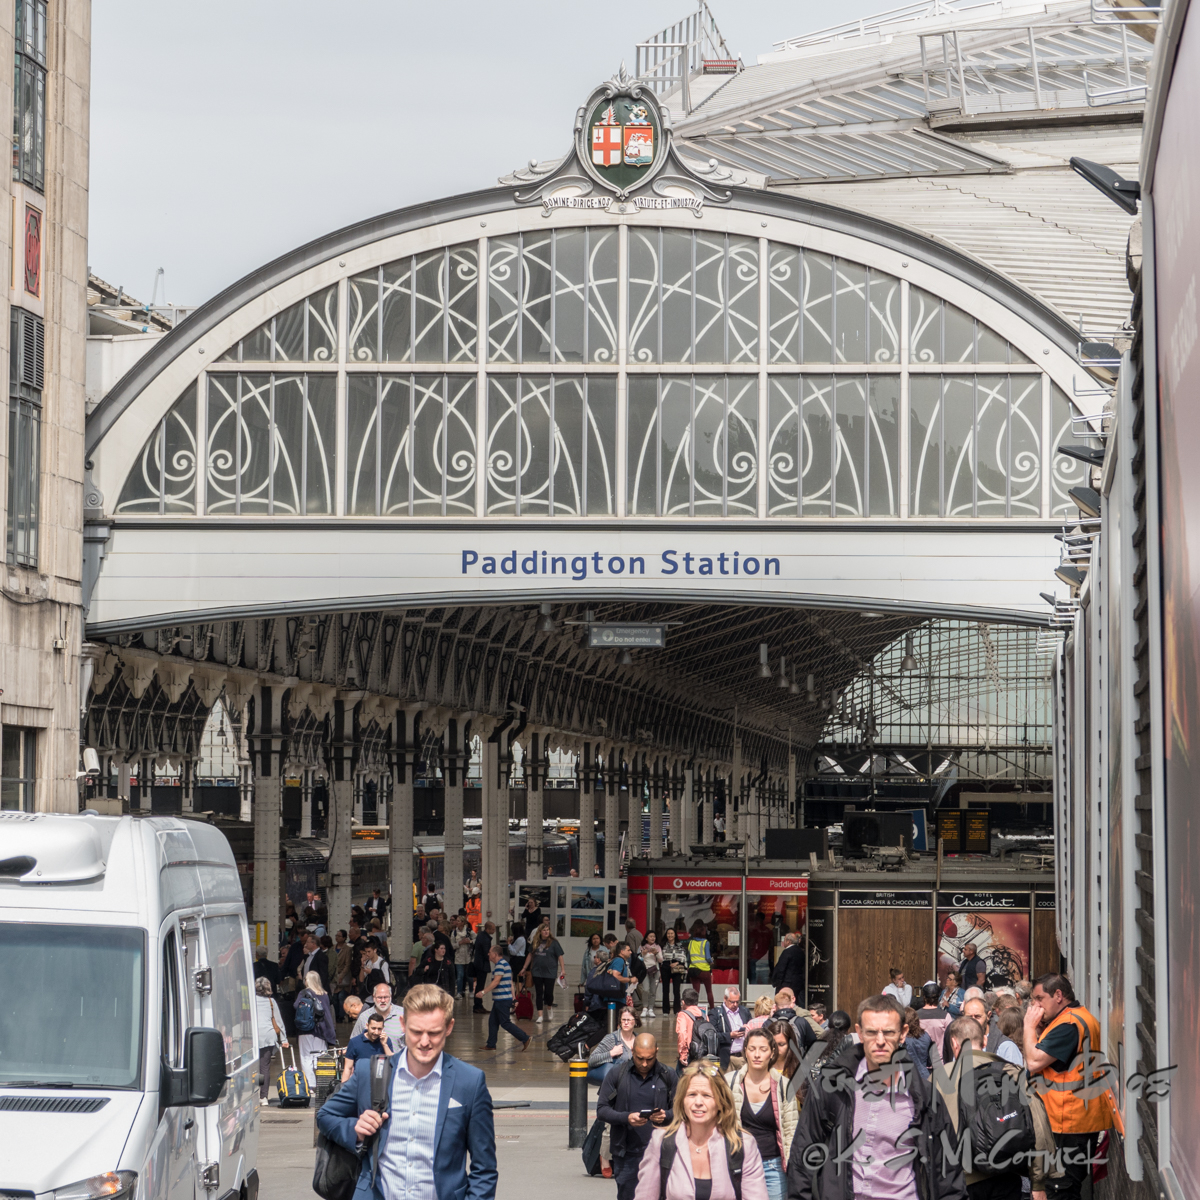 People walking out from under the ornate arch at the entrance to Paddington Station in London.